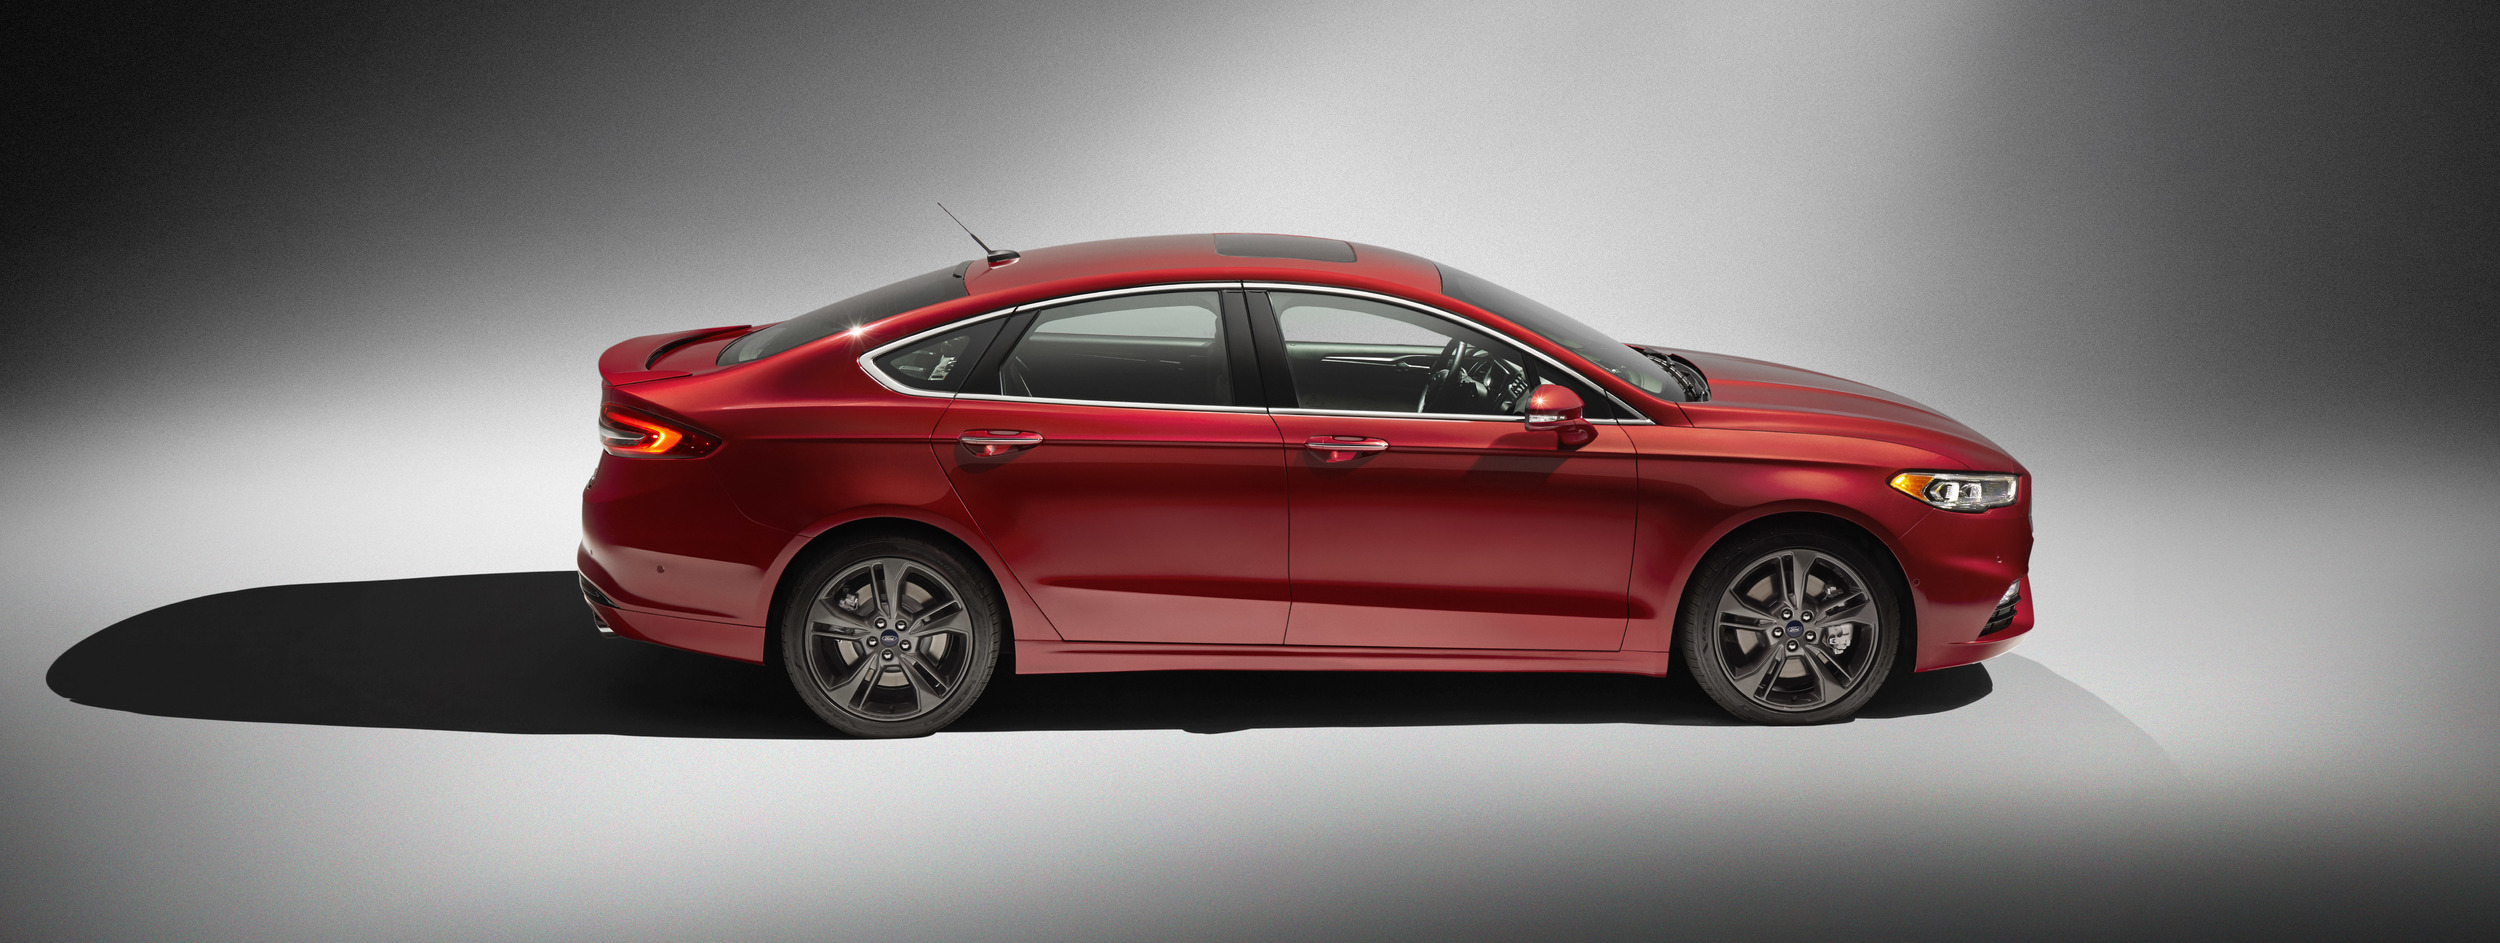 Thread 2017 ford fusion gains facelift 325 hp sport model with awd